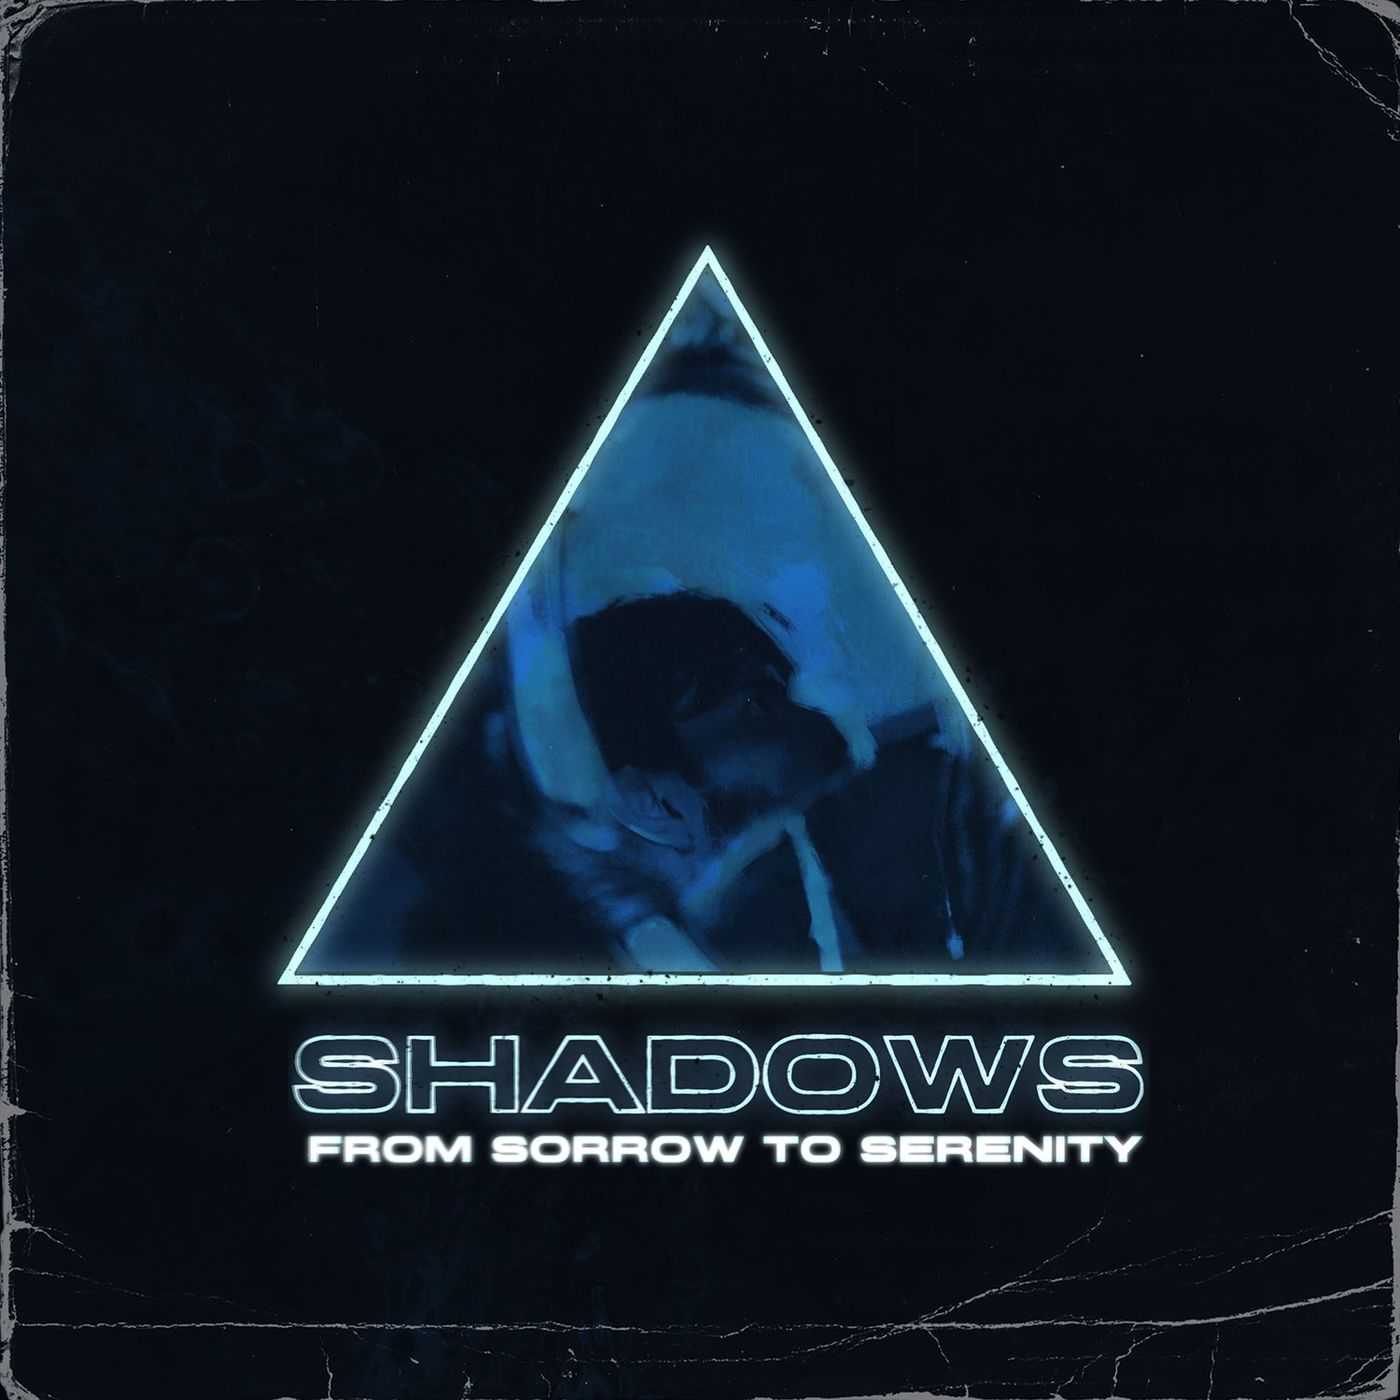 From Sorrow to Serenity - Shadows [single] (2020)